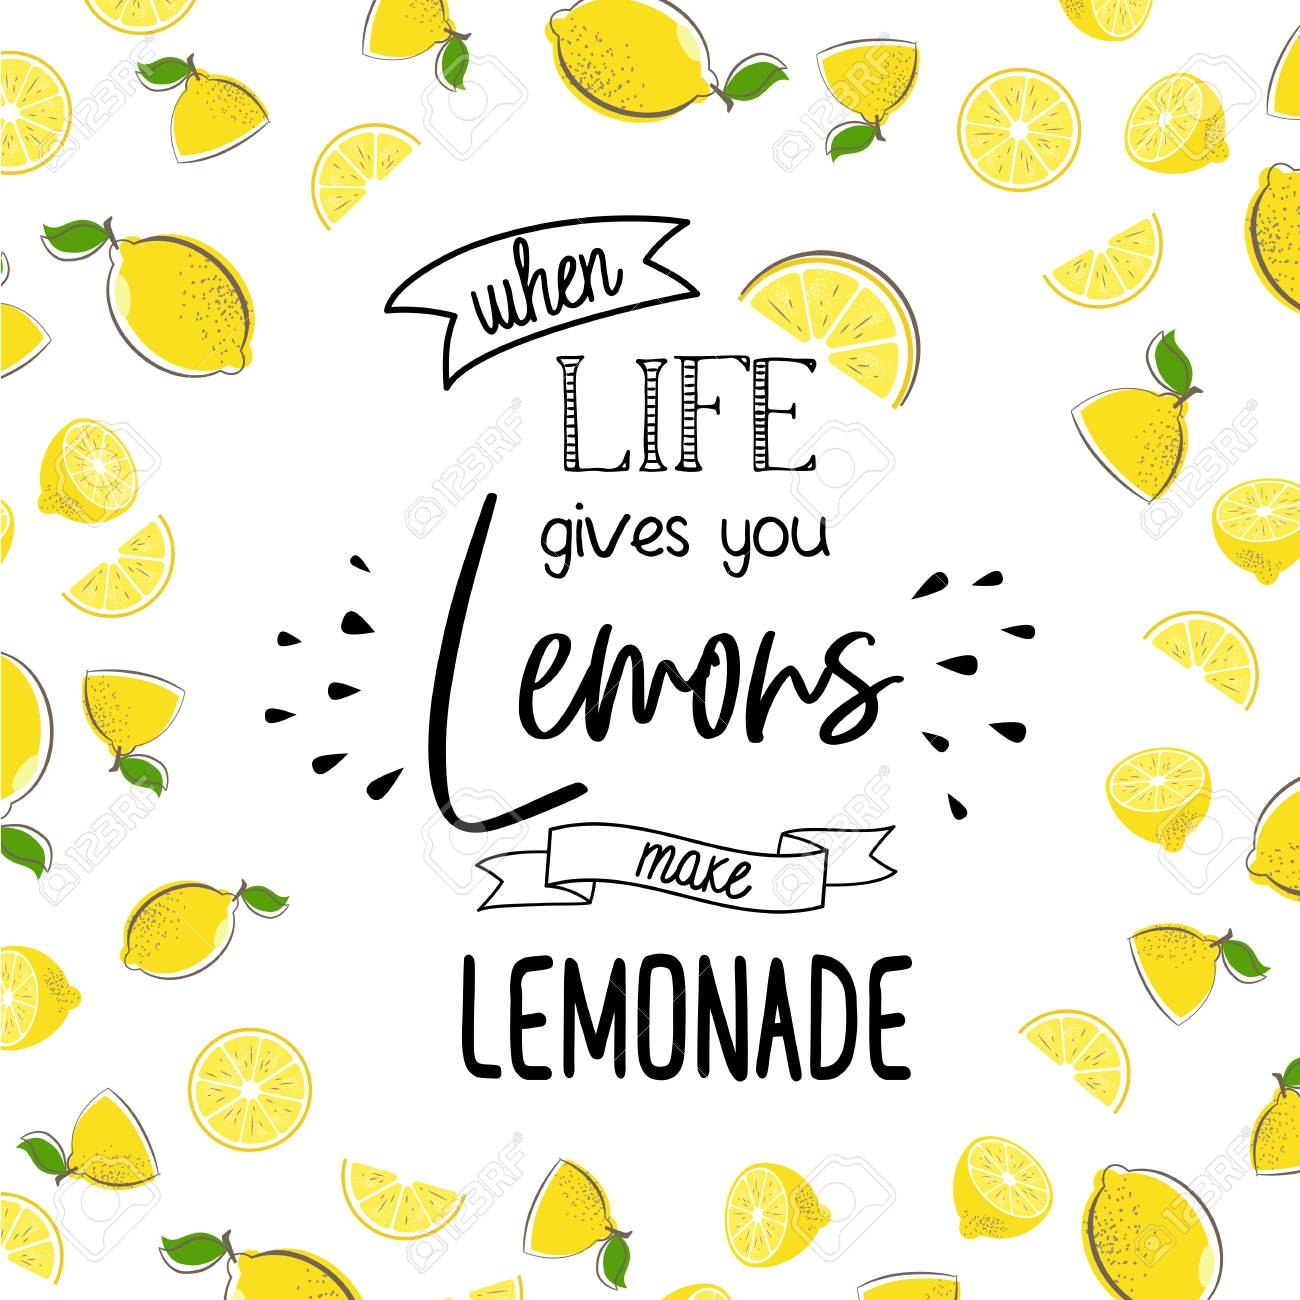 When Life Give You Lemon Make Lemonade Stock Photo Picture And Royalty Free Image Image 105350564